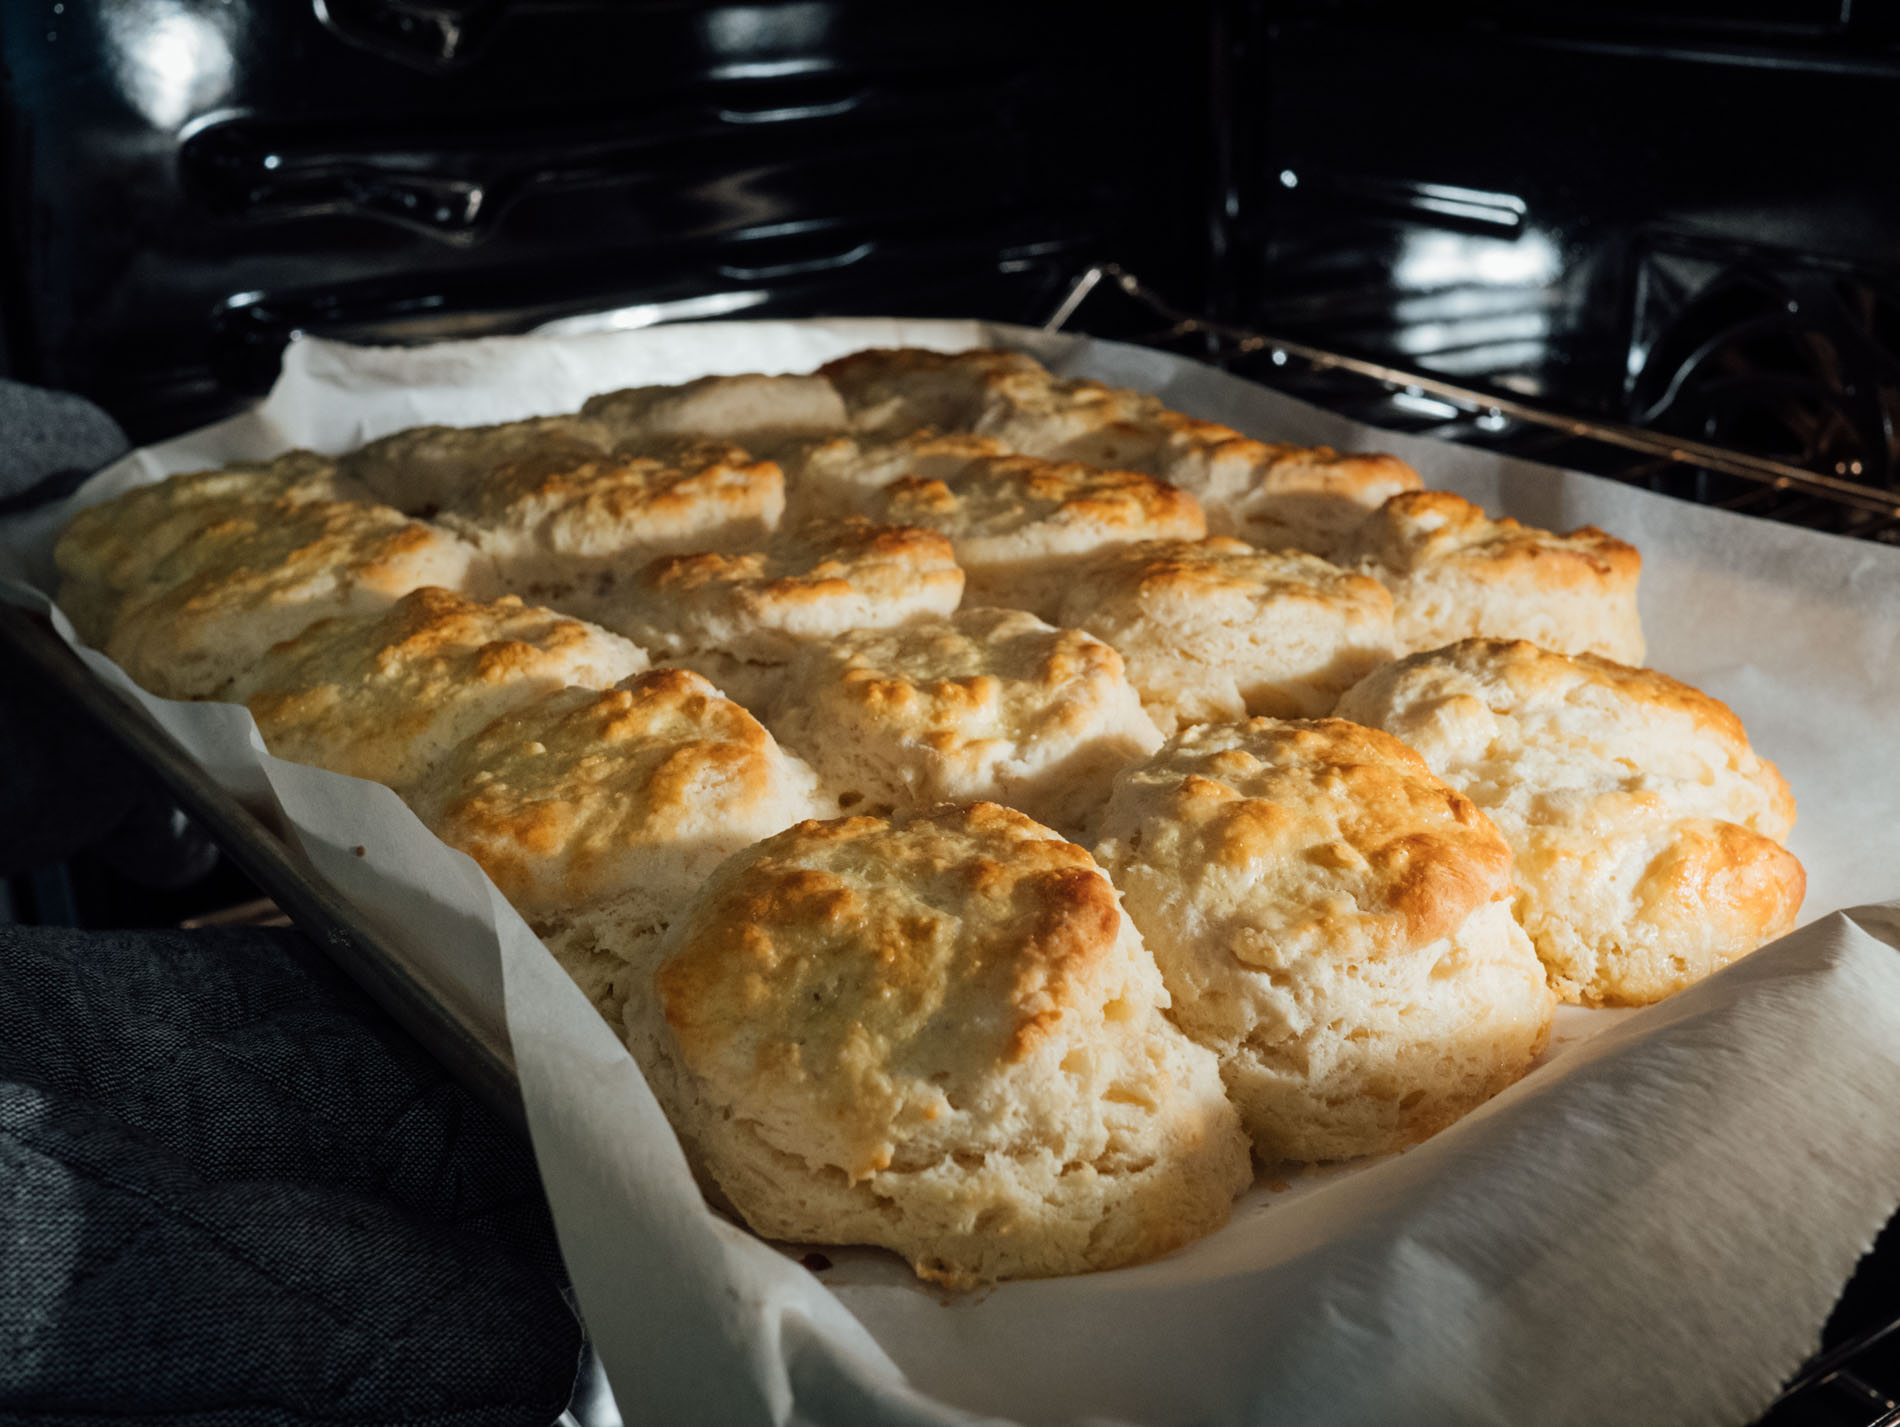 You'll want these biscuits on your breakfast table! They're so fluffy, buttery, and incredibly tender. You won't be able to just eat one! #biscuits #breakfast #breakfastrecipes